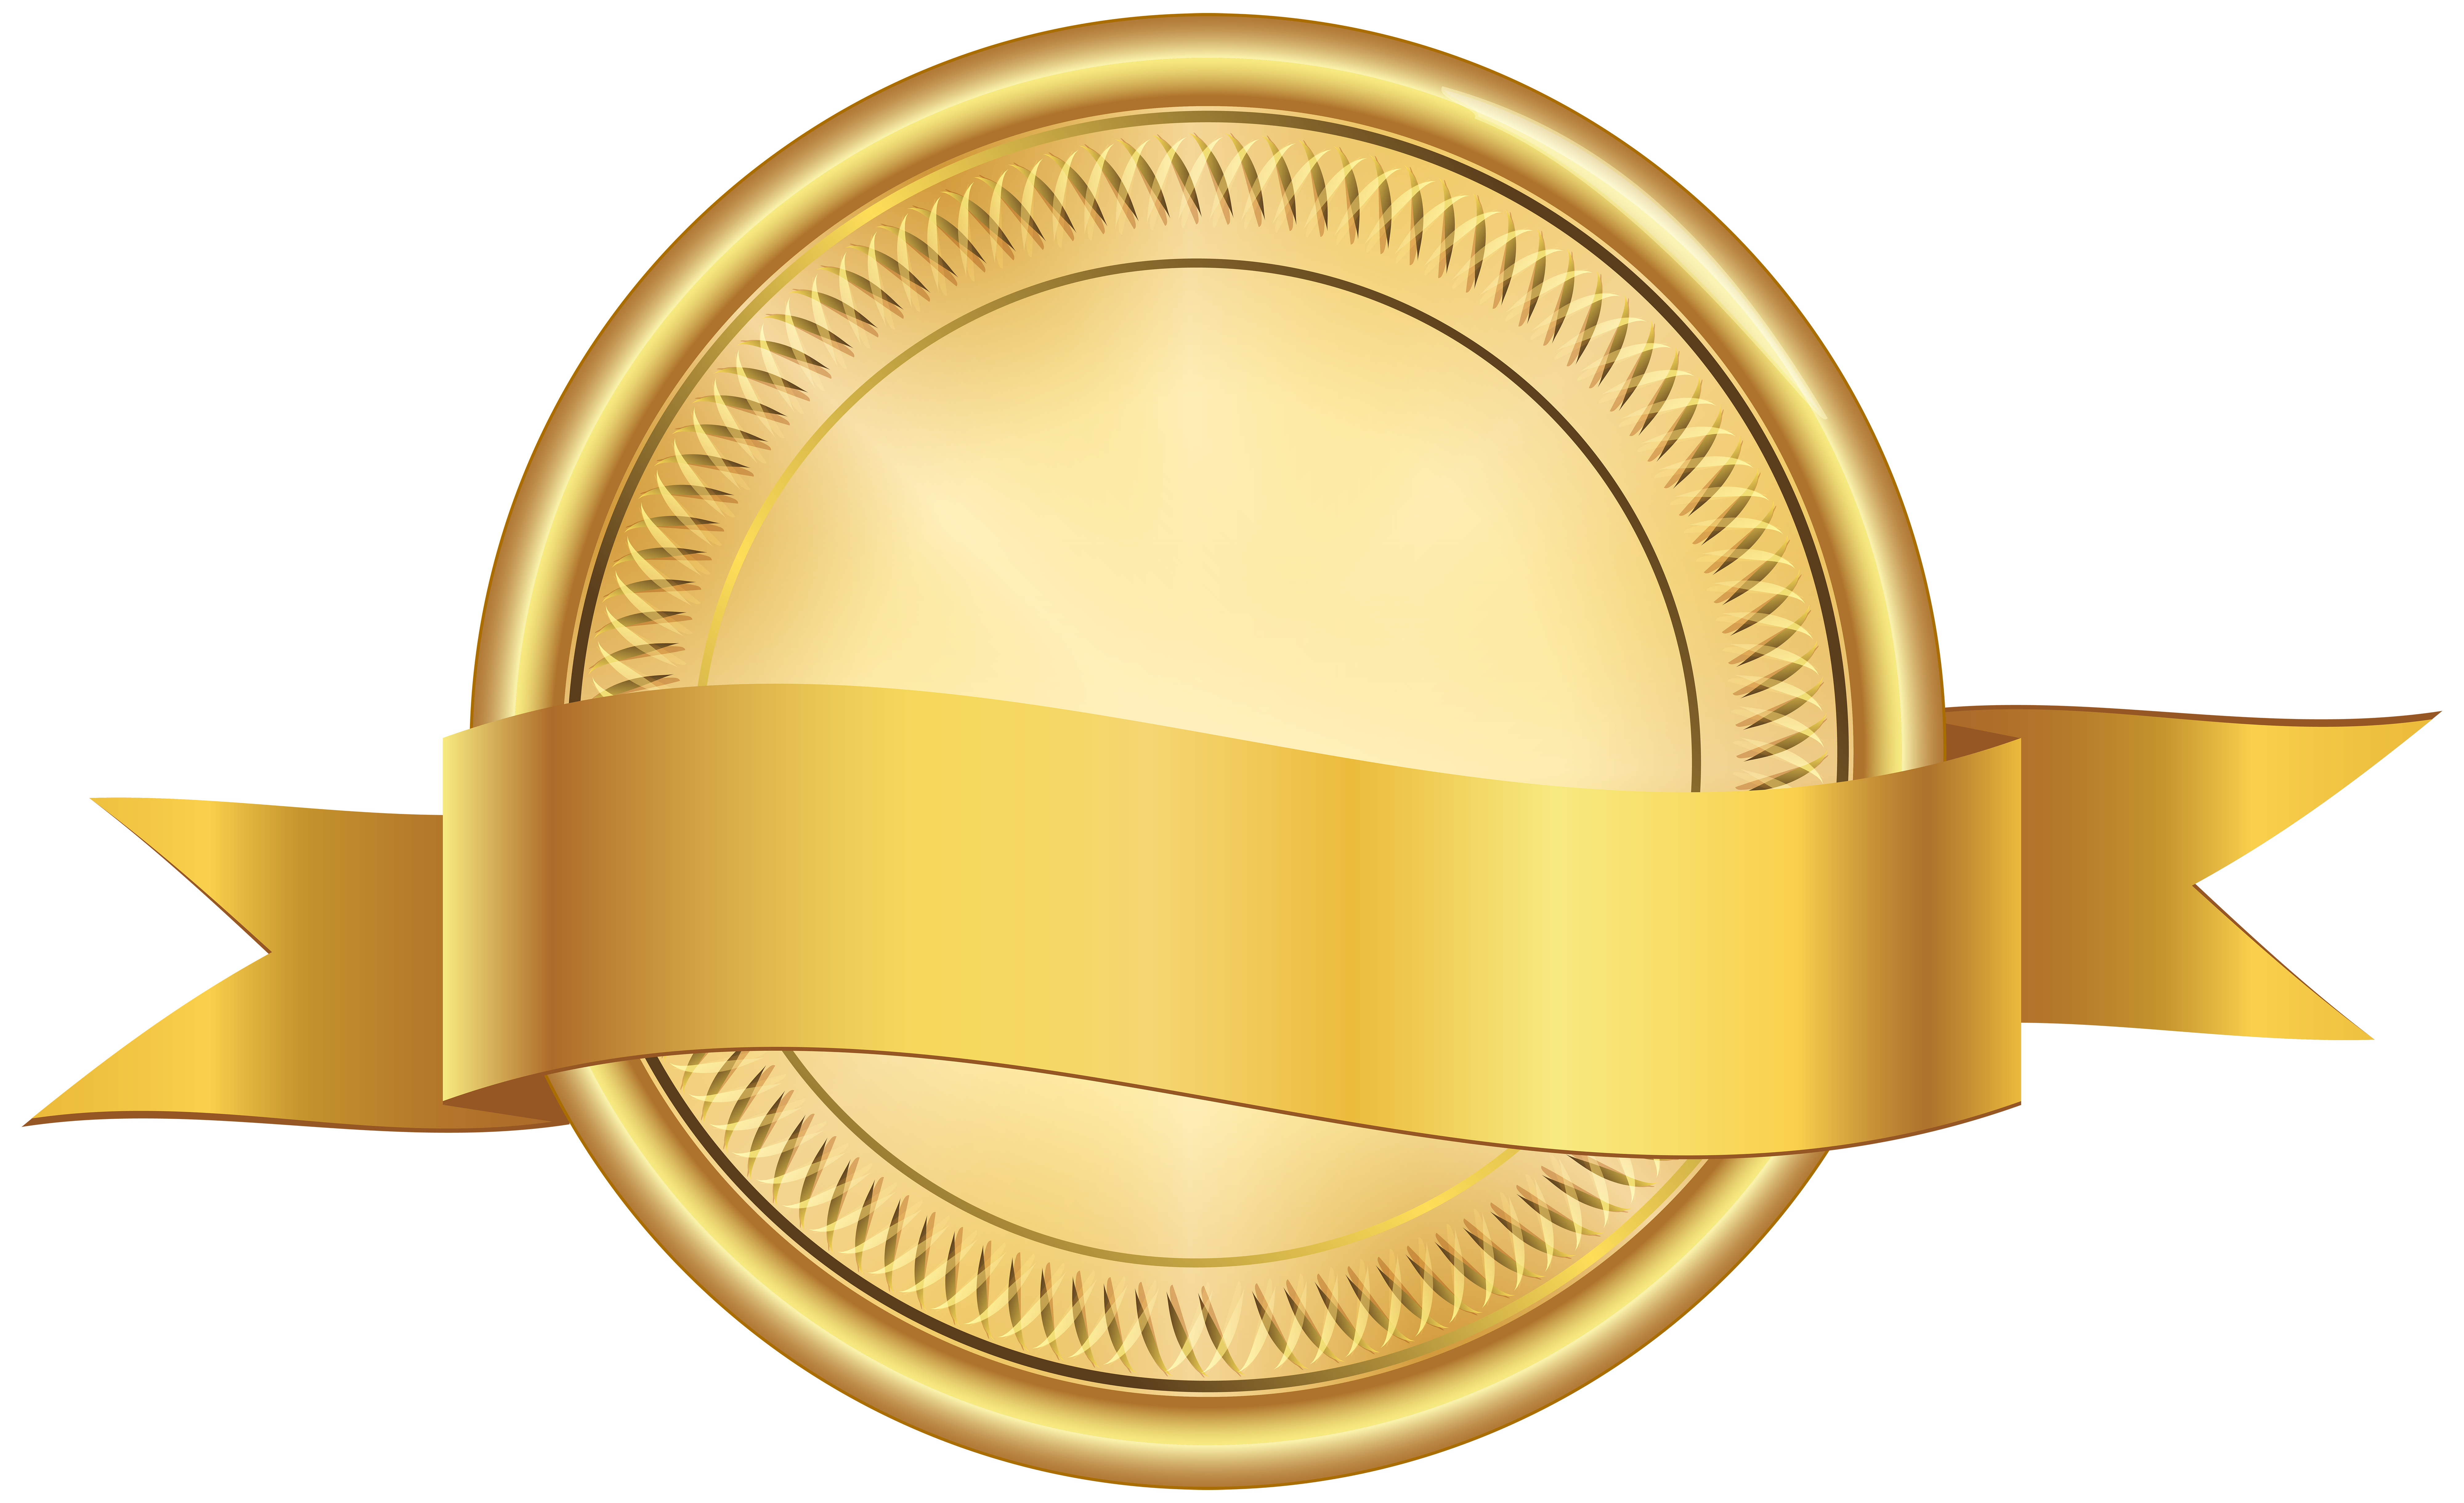 Money clipart banner. Seal with png clip